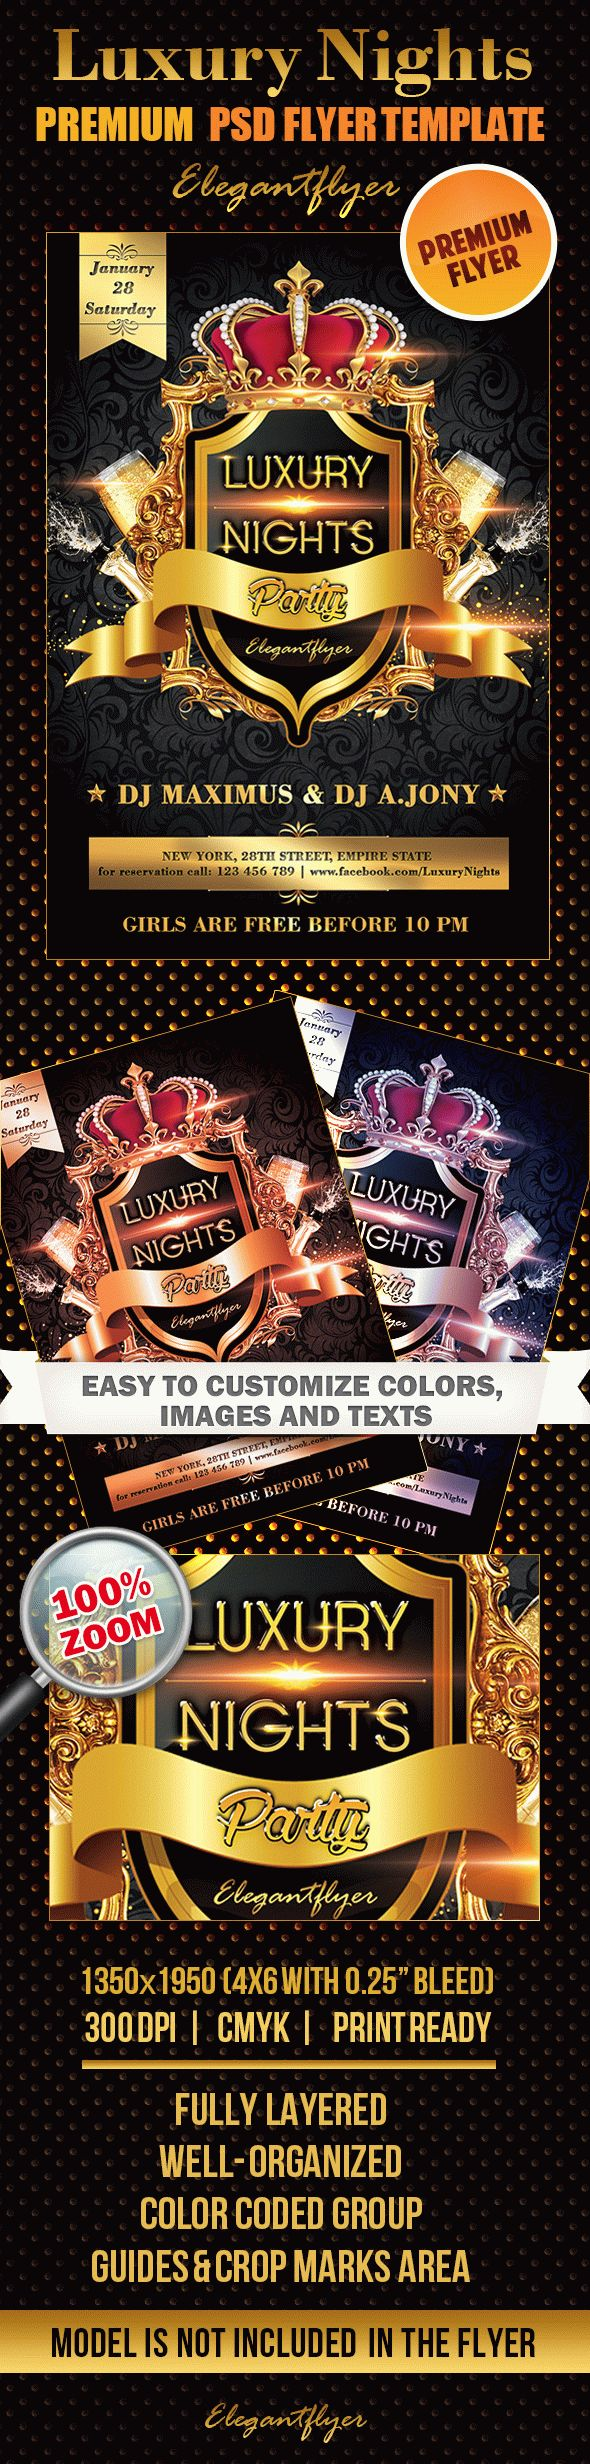 Luxury Nights Party – Premium Club flyer PSD Template